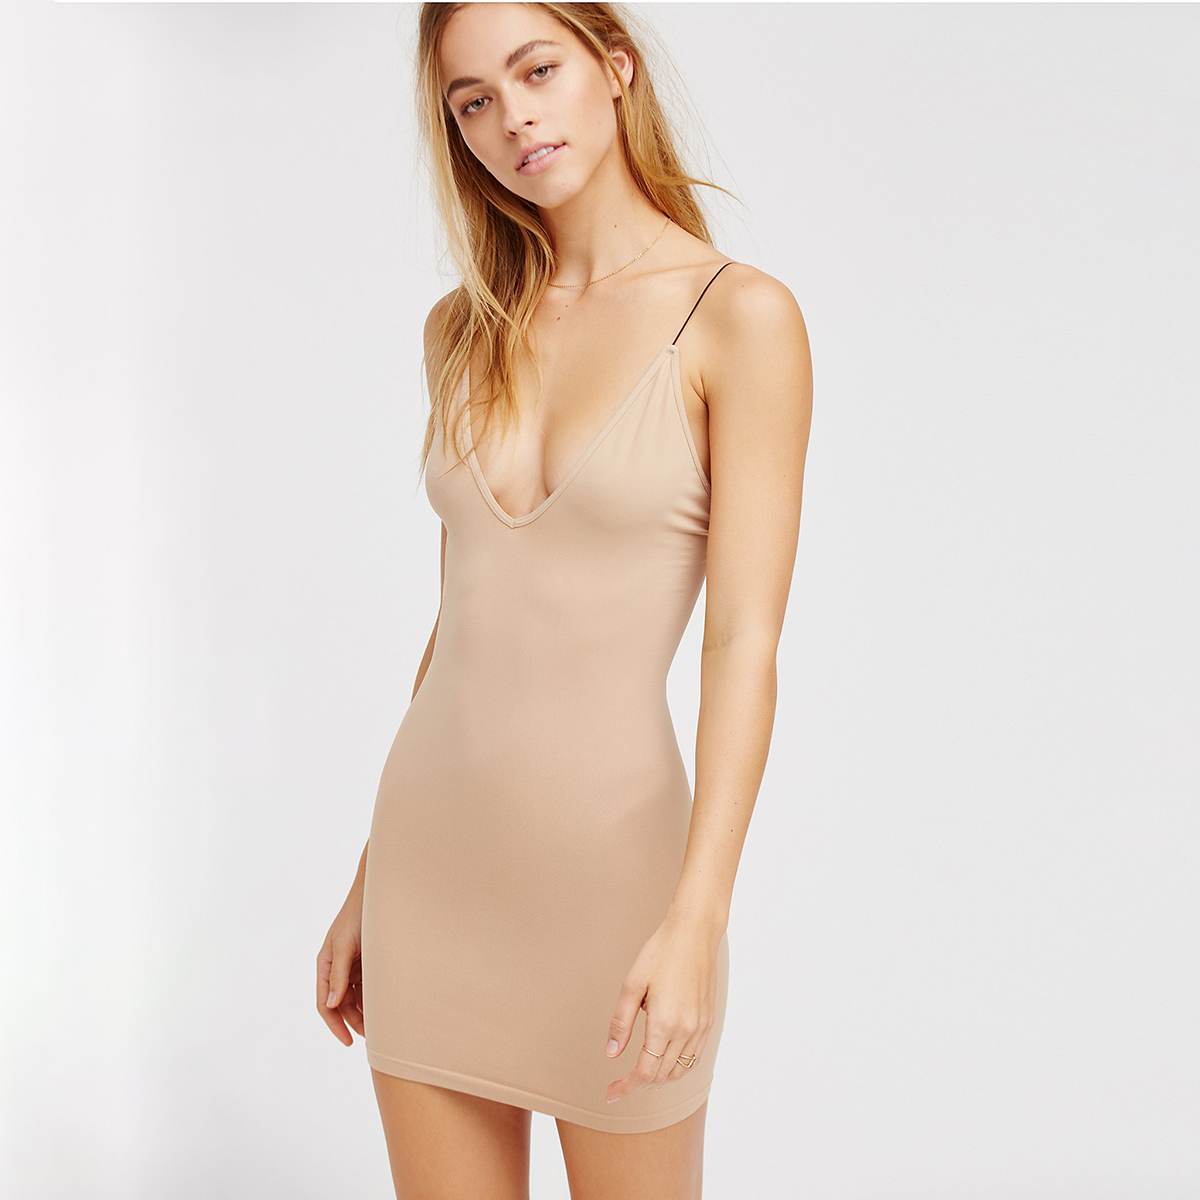 Invisible Nude <font><b>Sexy</b></font> Cami <font><b>Dress</b></font> 2019 Women <font><b>Deep</b></font> <font><b>V</b></font> neck Bodycon Slim <font><b>Dress</b></font> Underdress Ladies Retro <font><b>Sexy</b></font> Short Under <font><b>Dresses</b></font> Female image